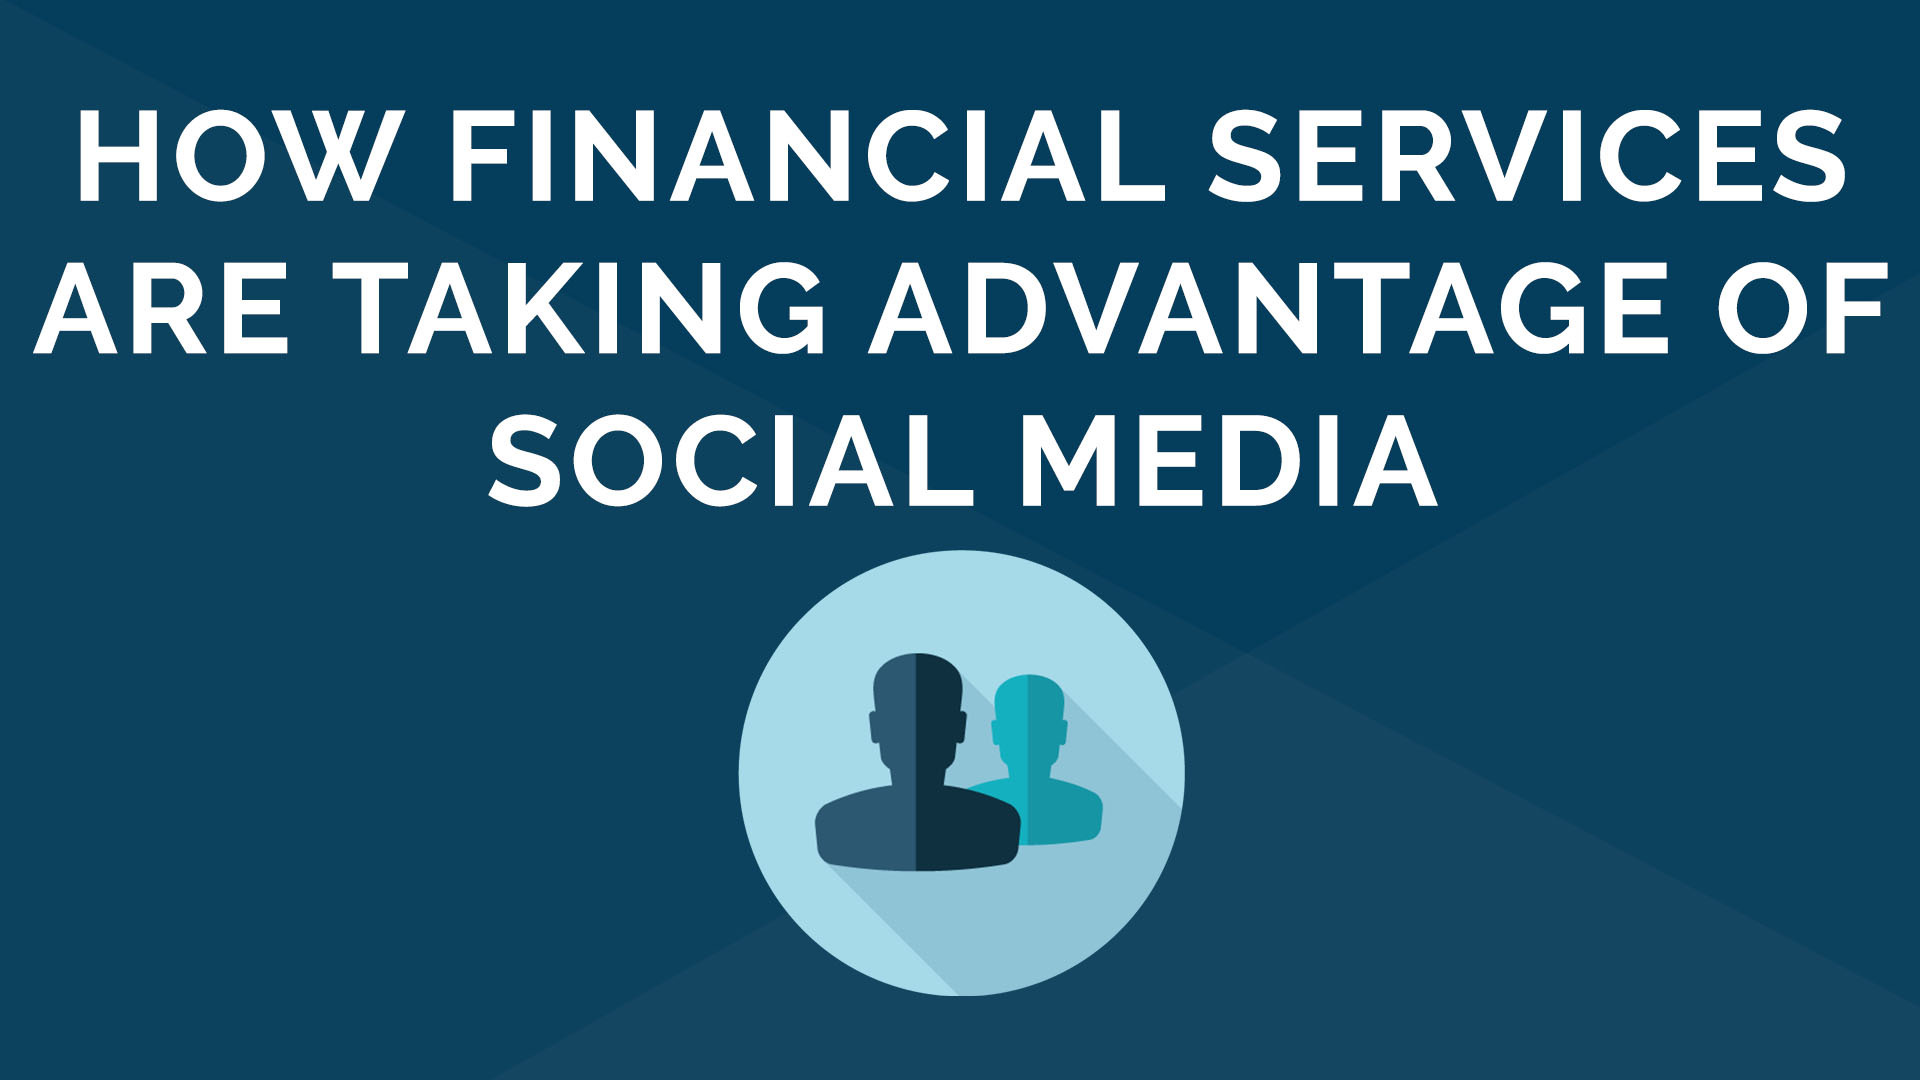 How Financial Services Are Taking Advantage of Social Media